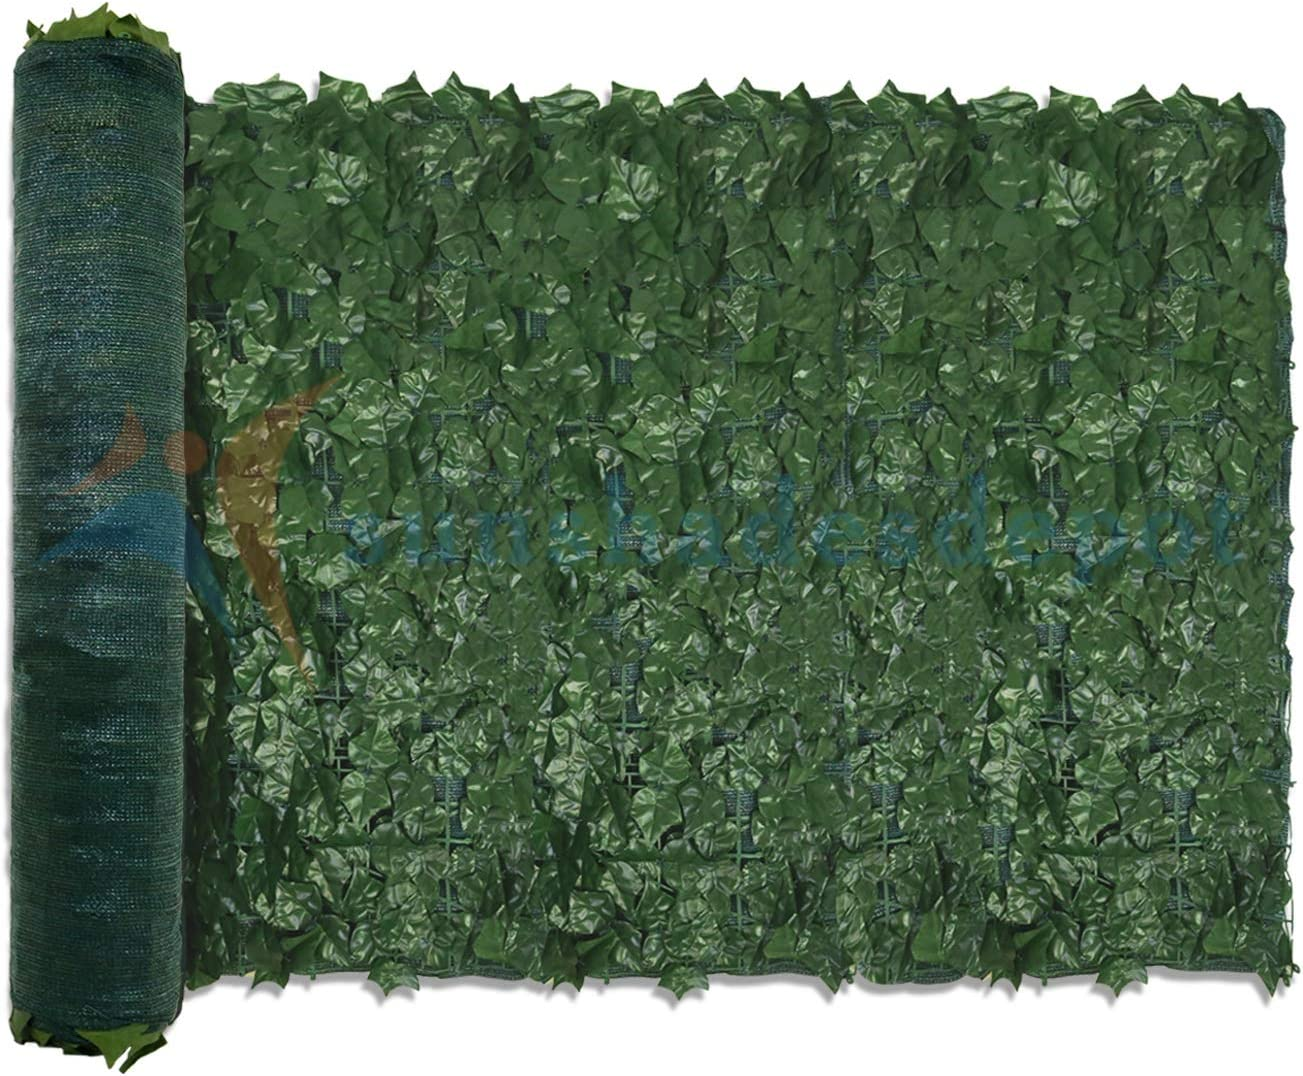 TANG by Sunshades Depot Max 80% OFF 4'x8' Artificial Dealing full price reduction Scr Faux Ivy Fence Leaf